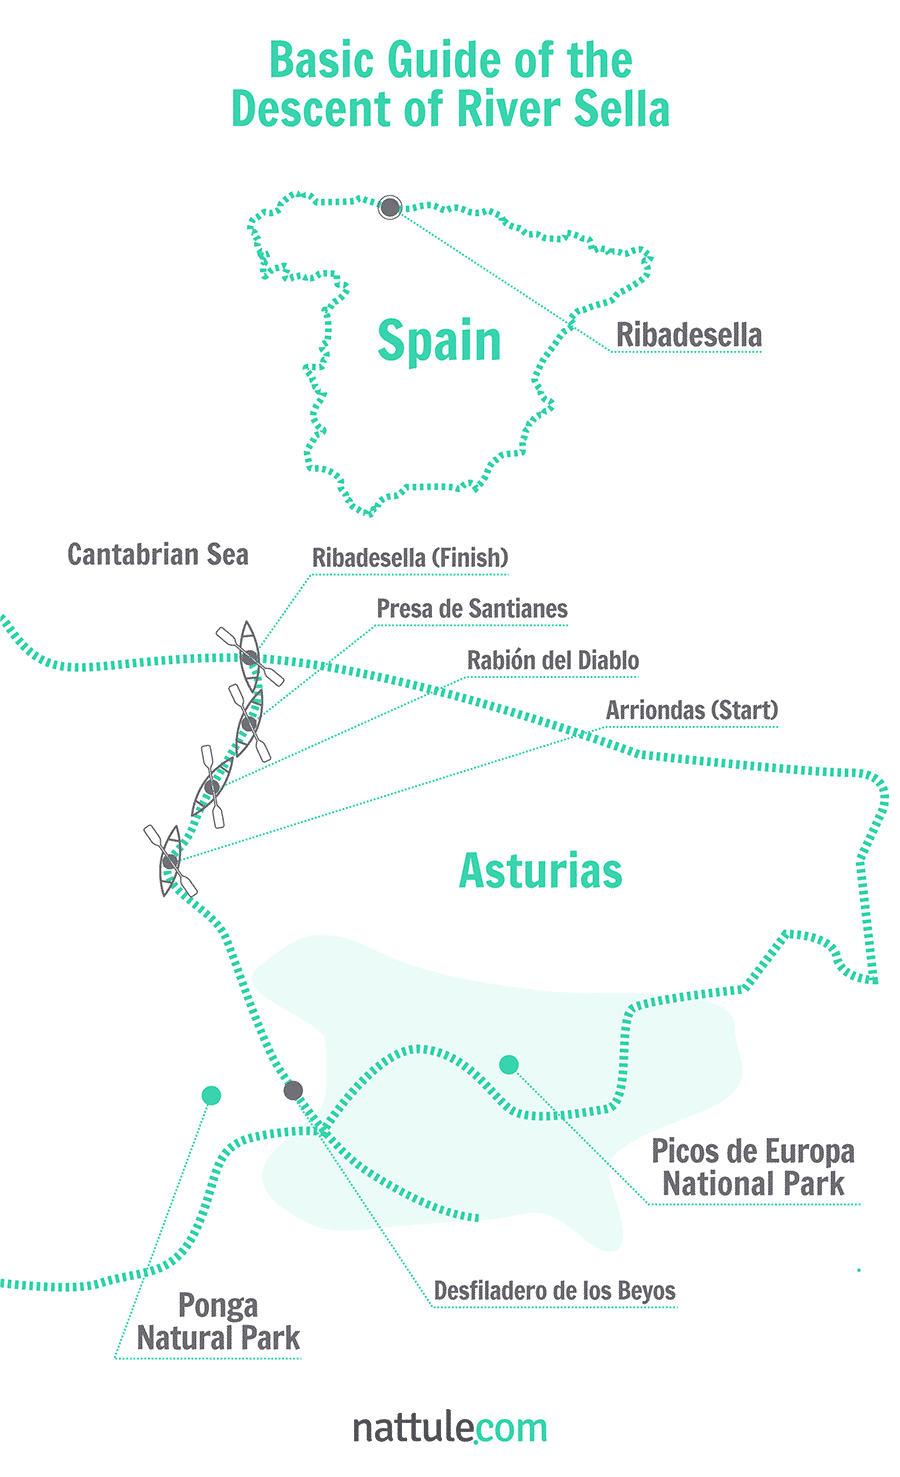 Basic Guide of the Descent of River Sella